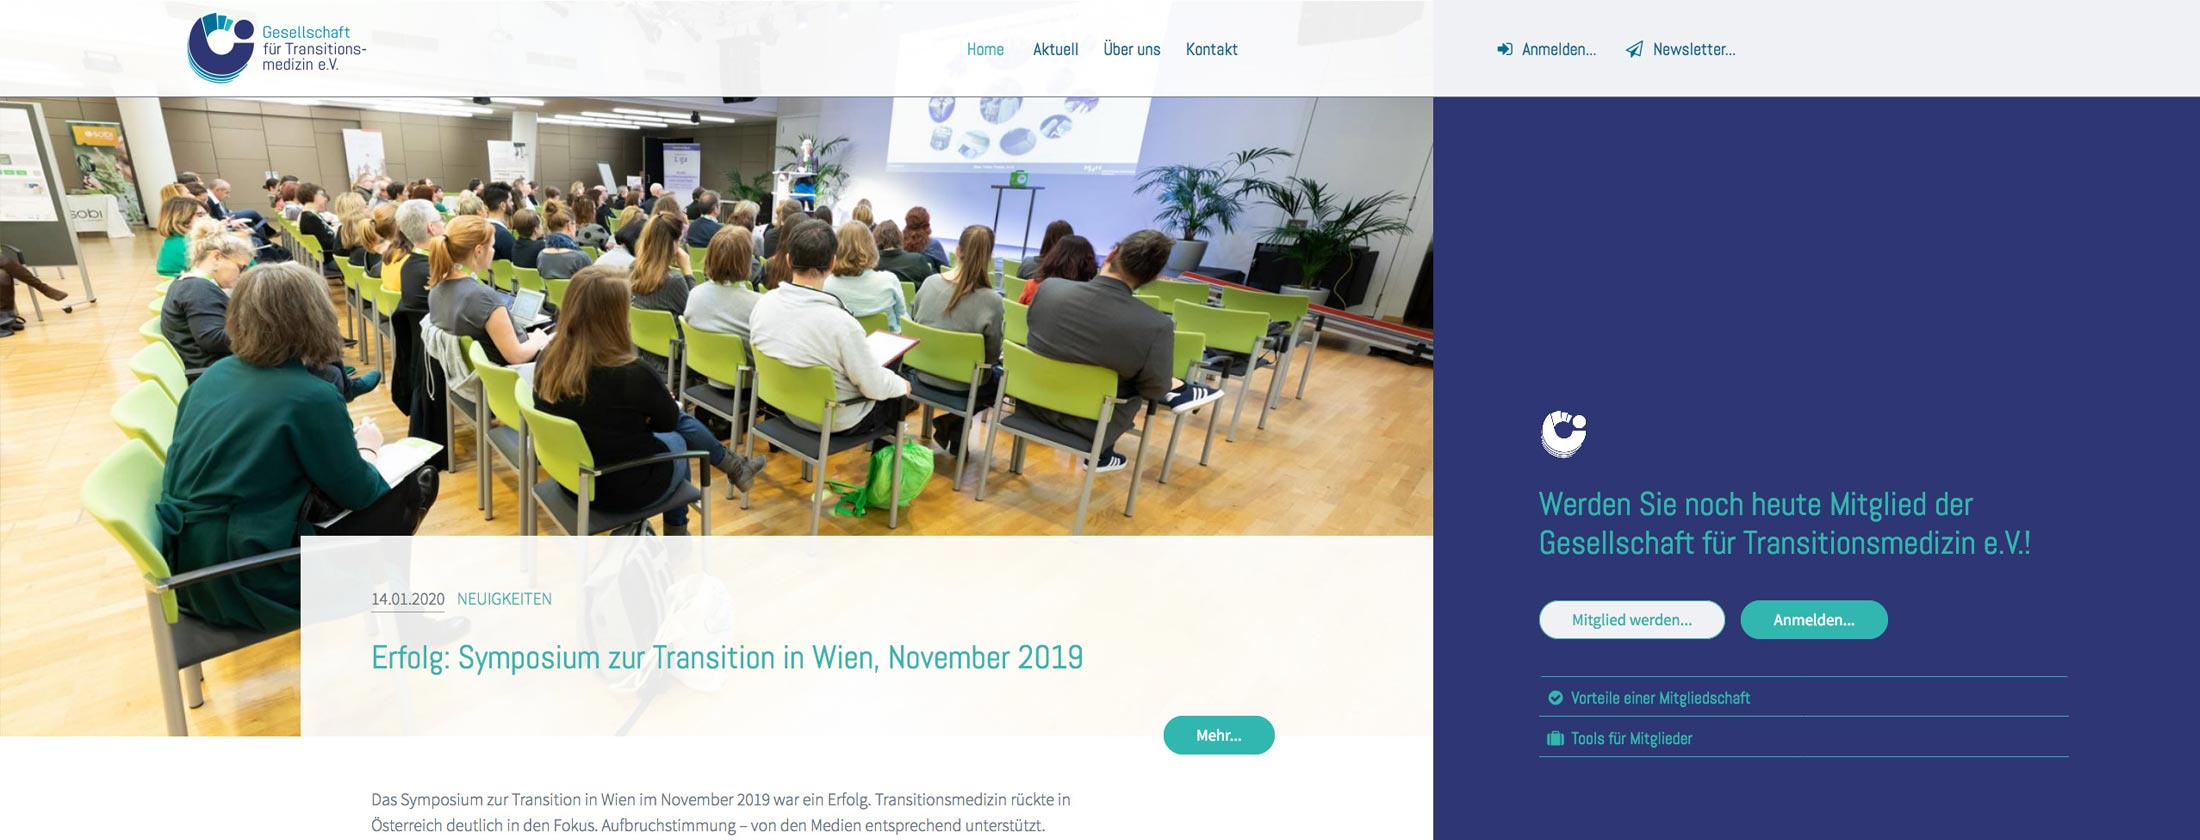 Website transitionsmedizin.de